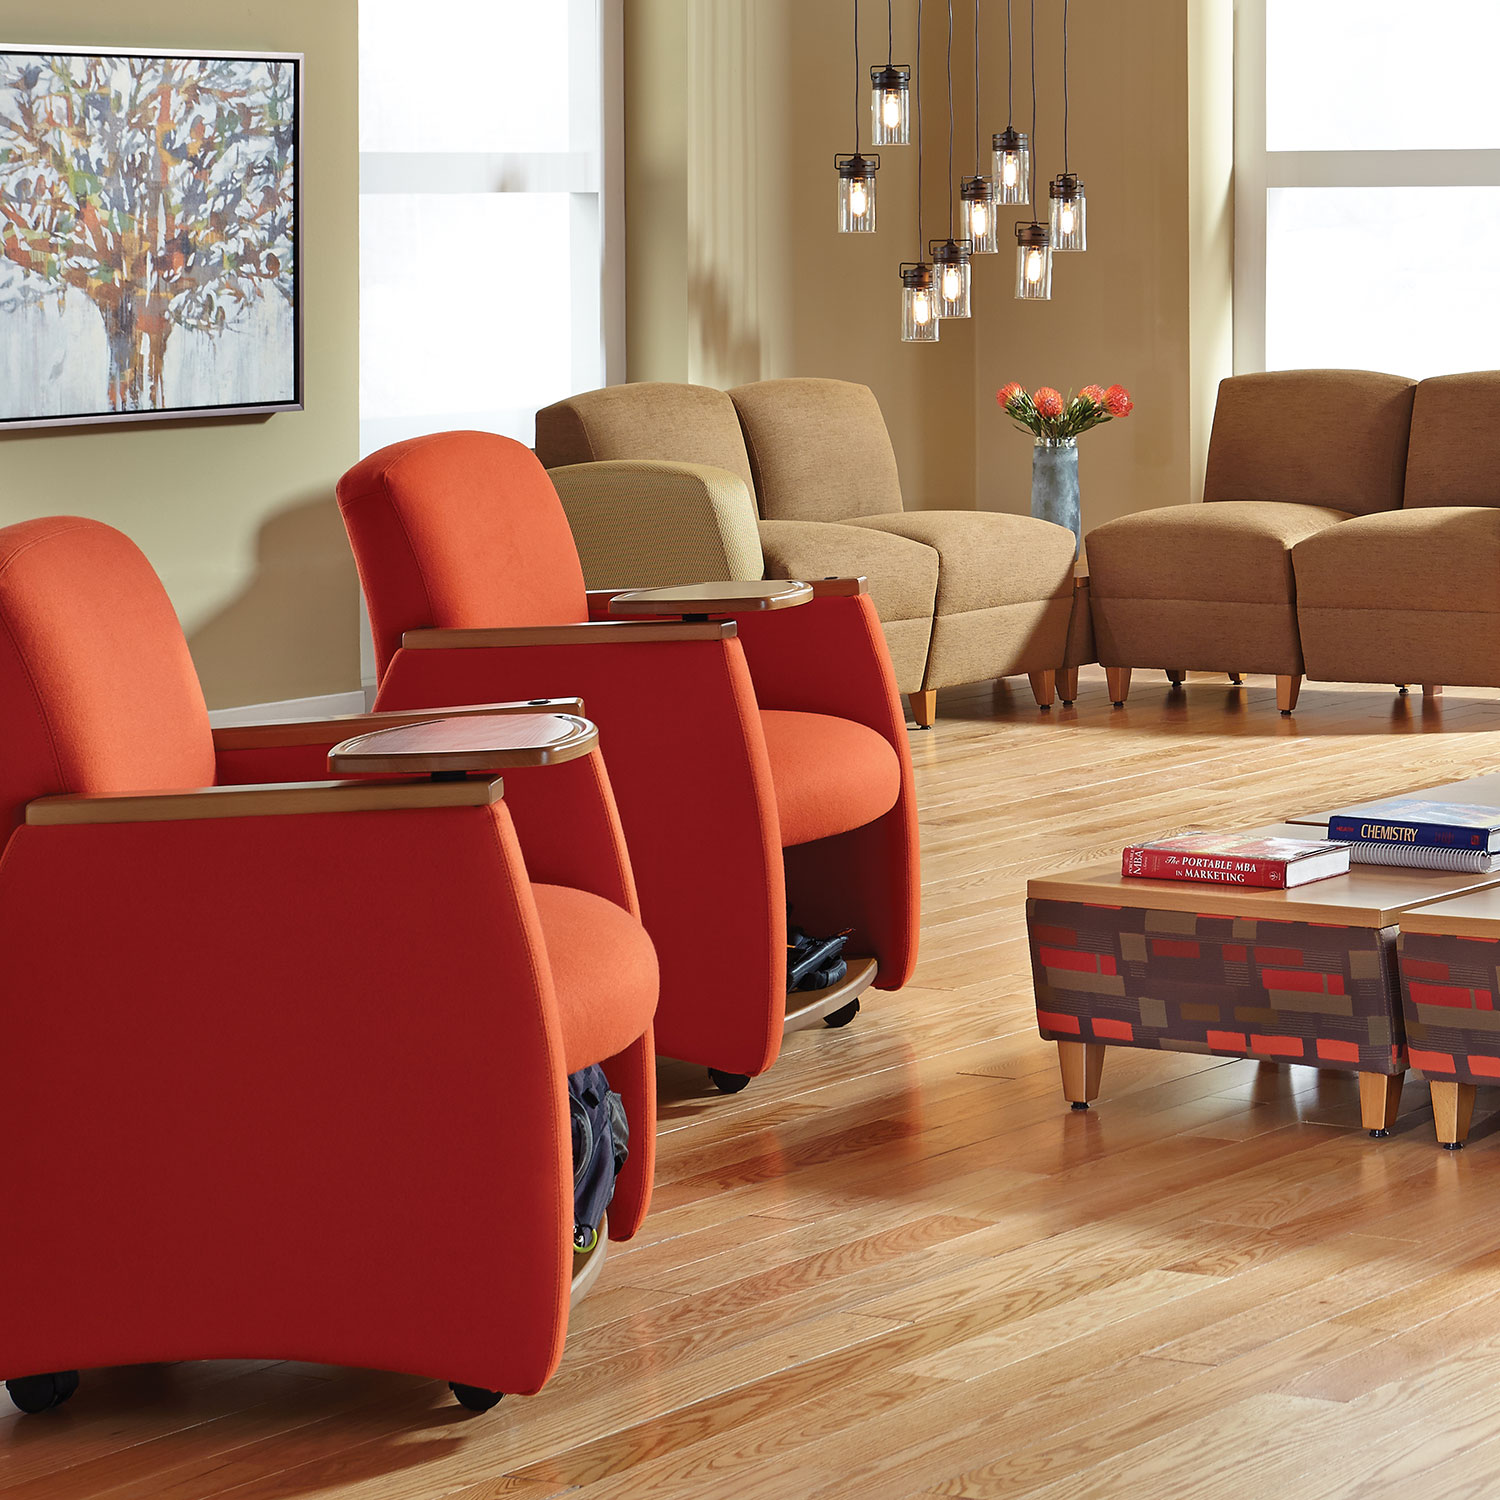 Highpoint Furniture Highpoint Furniture Stores North Carolina Astro Dinette Table And Barstool